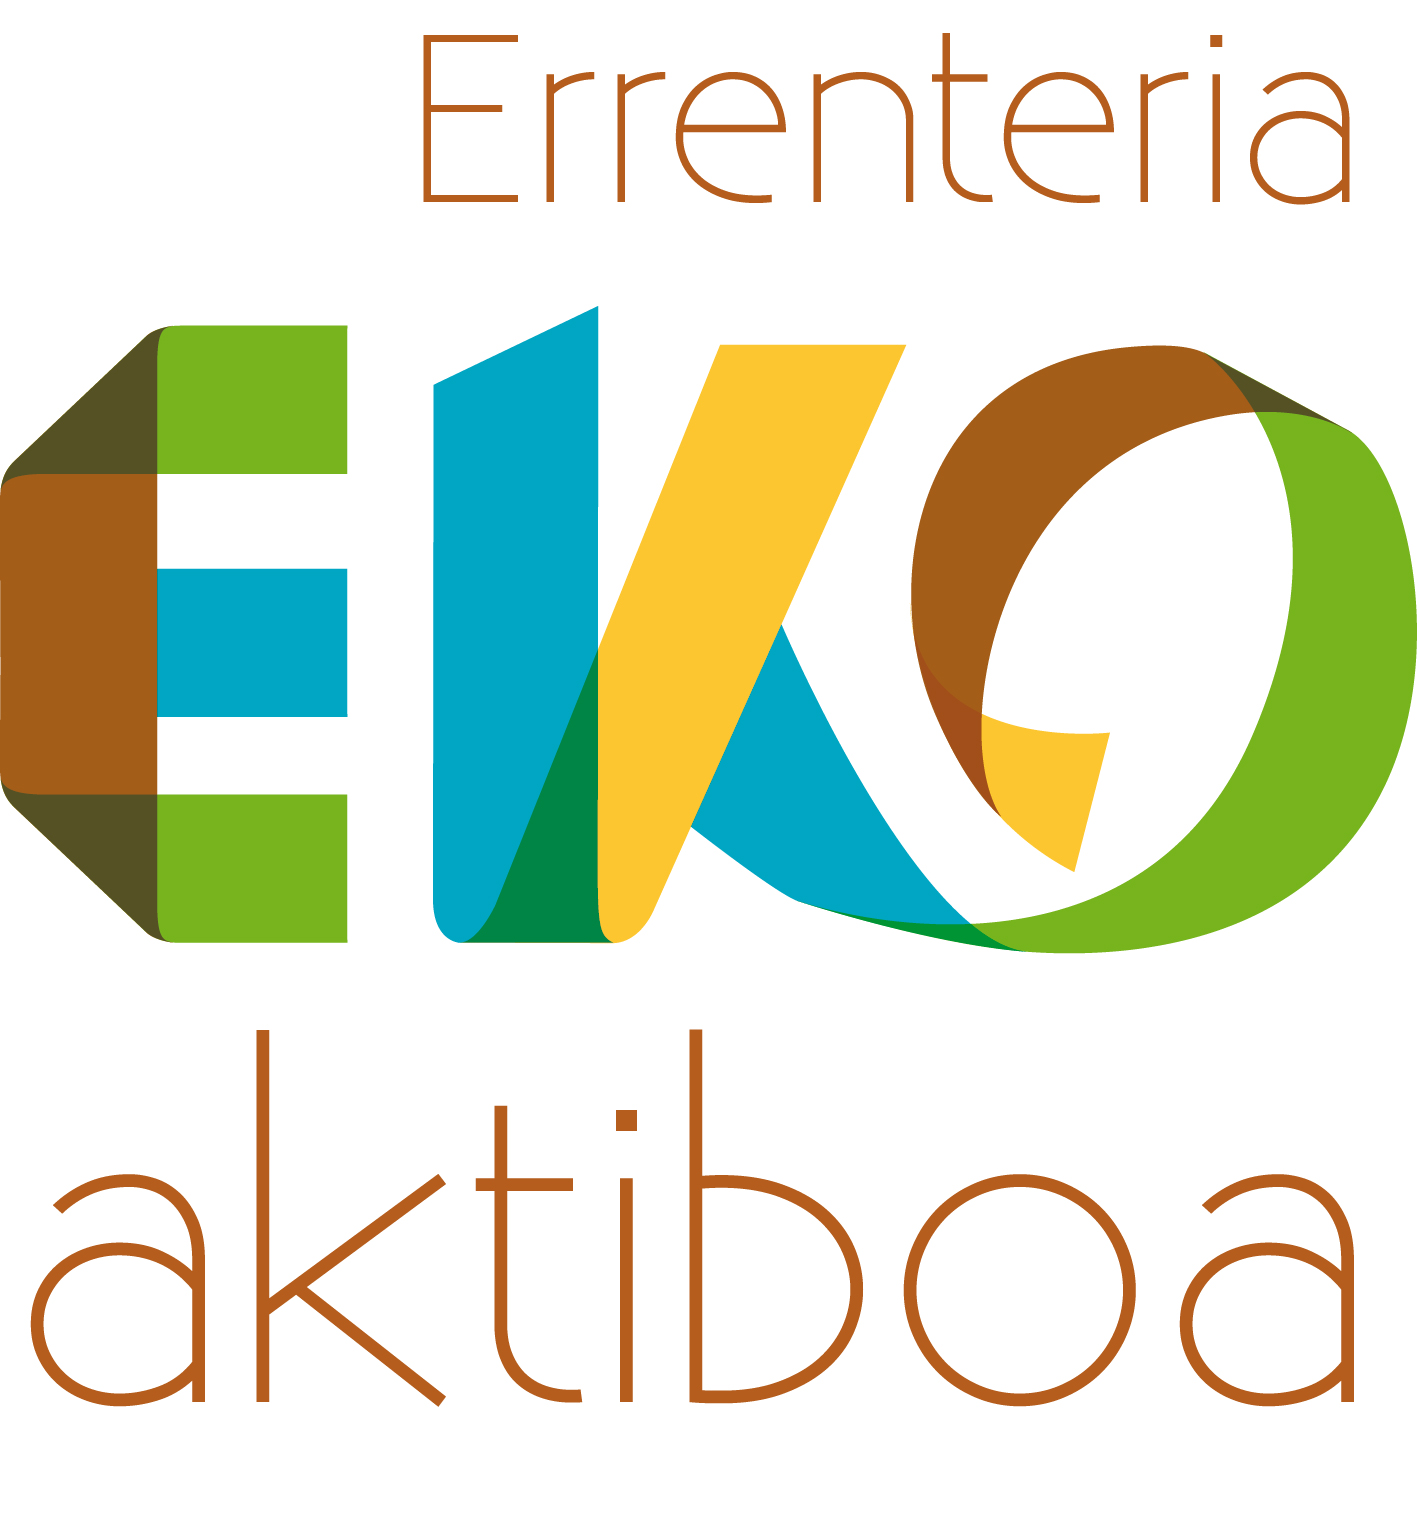 Ekoaktibo